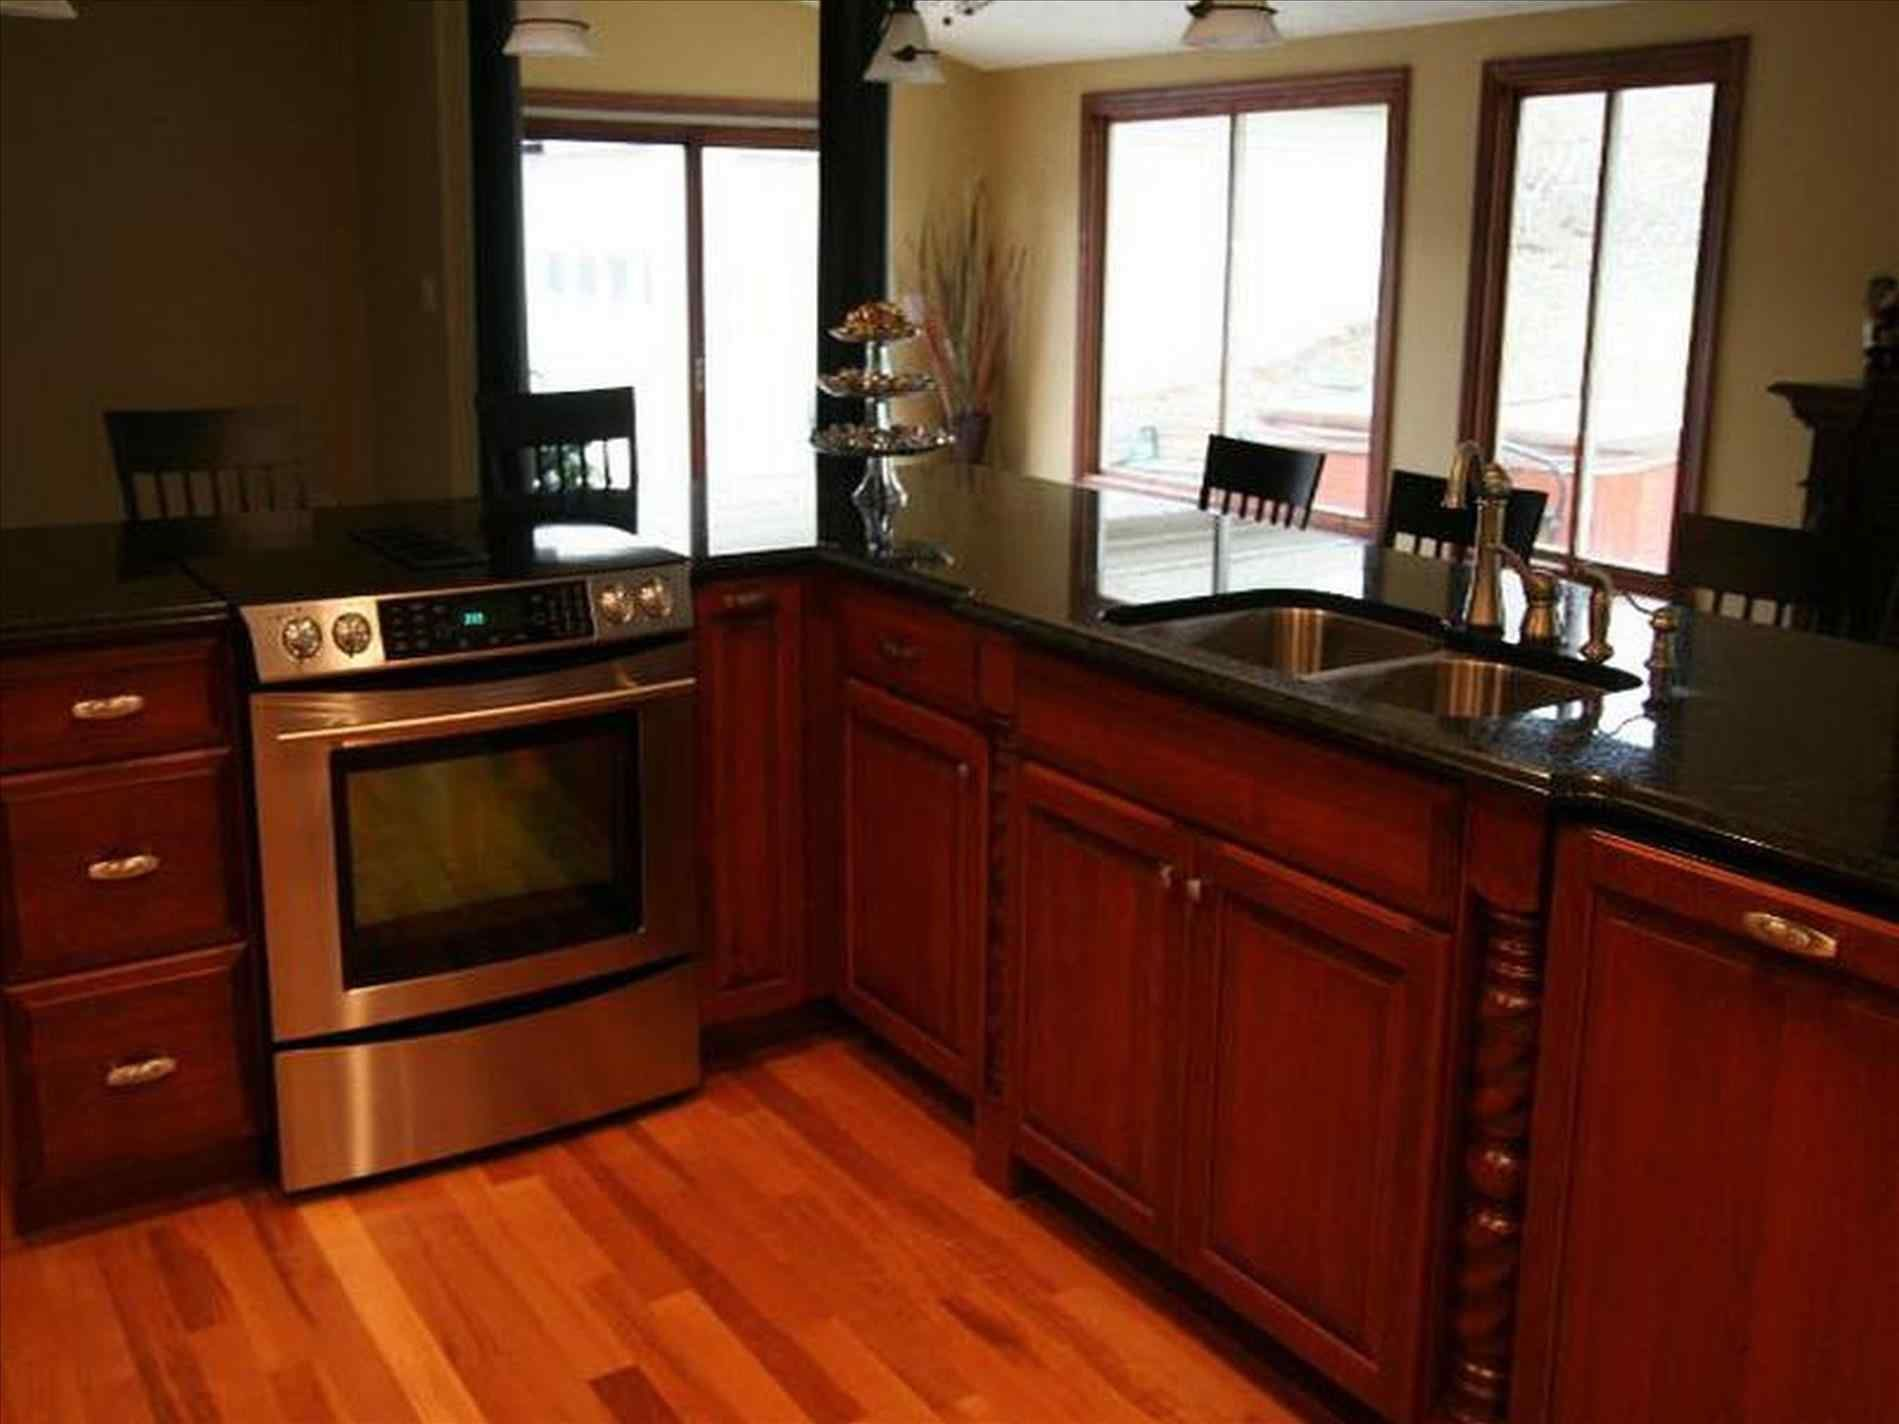 New Kitchen Cabinet Top View At Xxbb821 Info Cost Of Kitchen Cabinets Used Kitchen Cabinets Kitchen Design